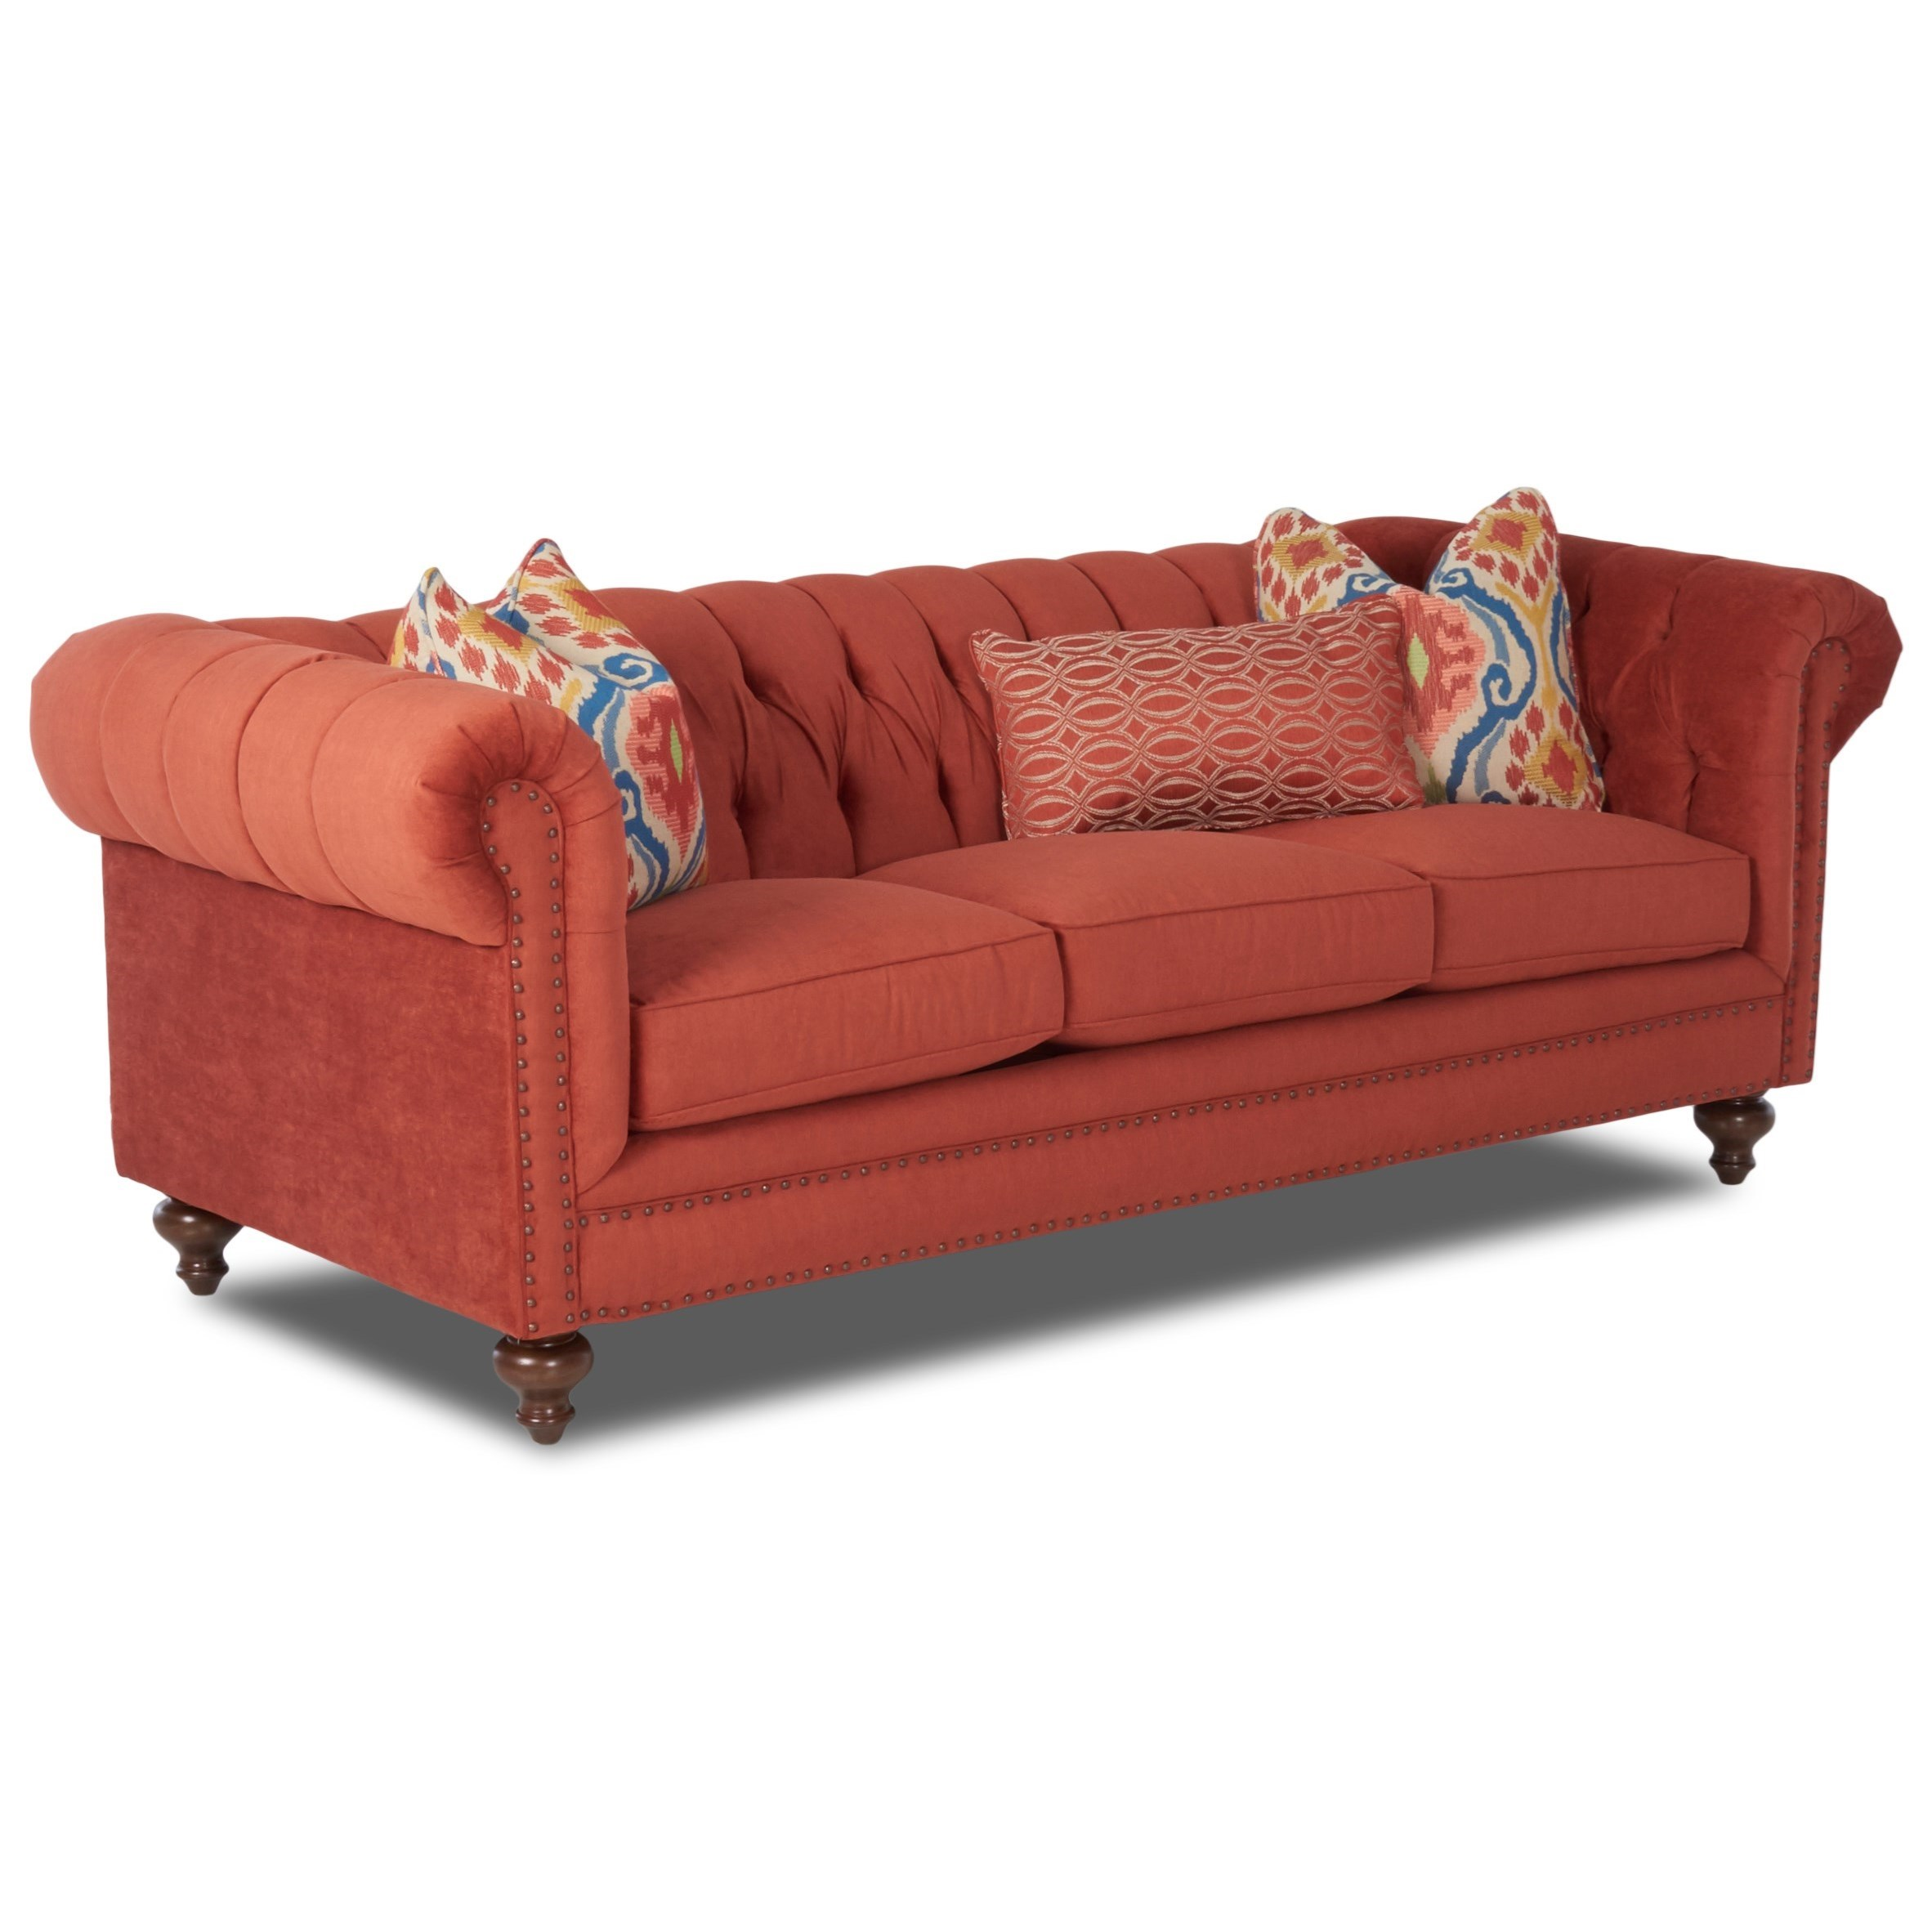 Ashleys Furniture Charlotte Nc: Klaussner Charlotte D93410 S Traditional Chesterfield Sofa